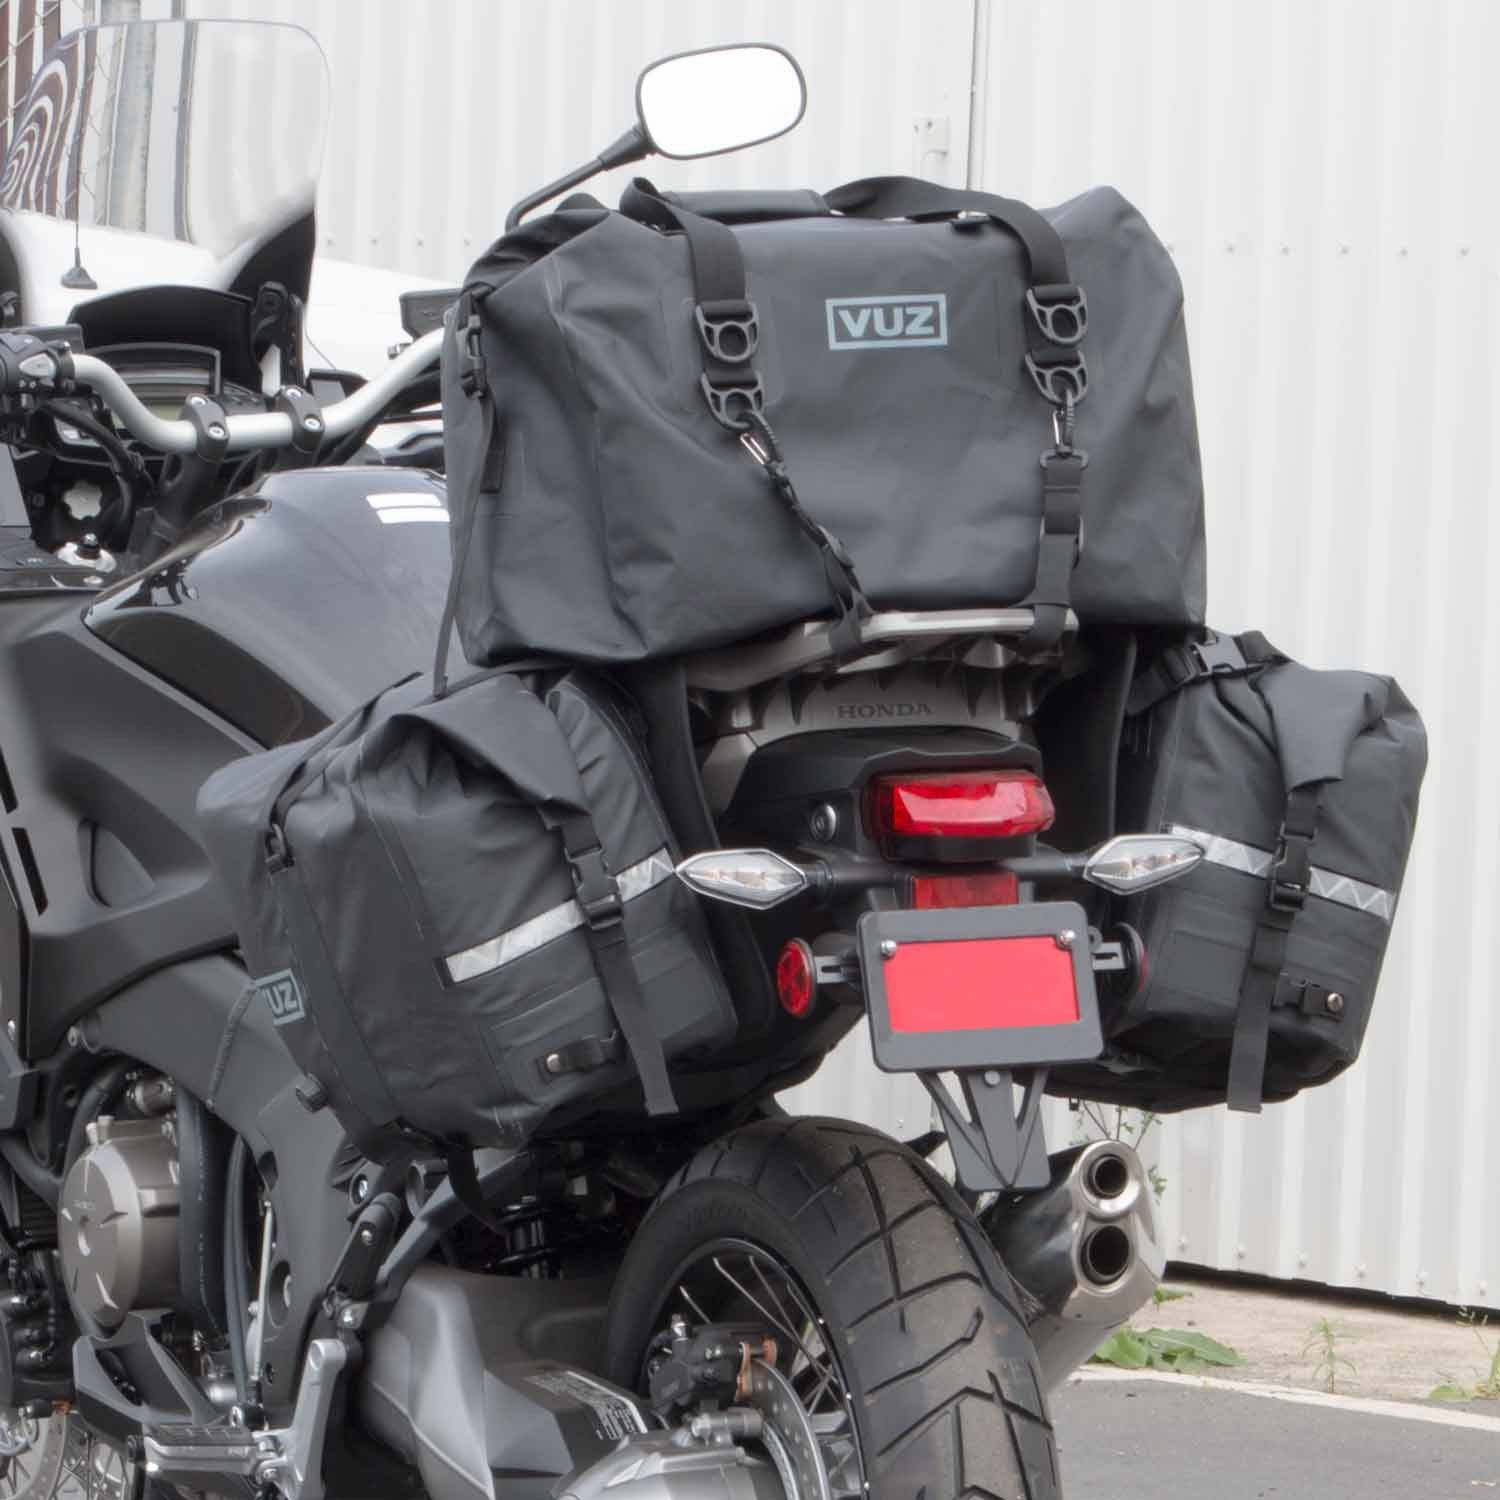 The Two Best Friends The Vuz Dry Saddlebags Are Perfect For Any Riding Condition And Attach To Various Bike Type Bike Saddle Bags Motorcycle Luggage Saddlebags